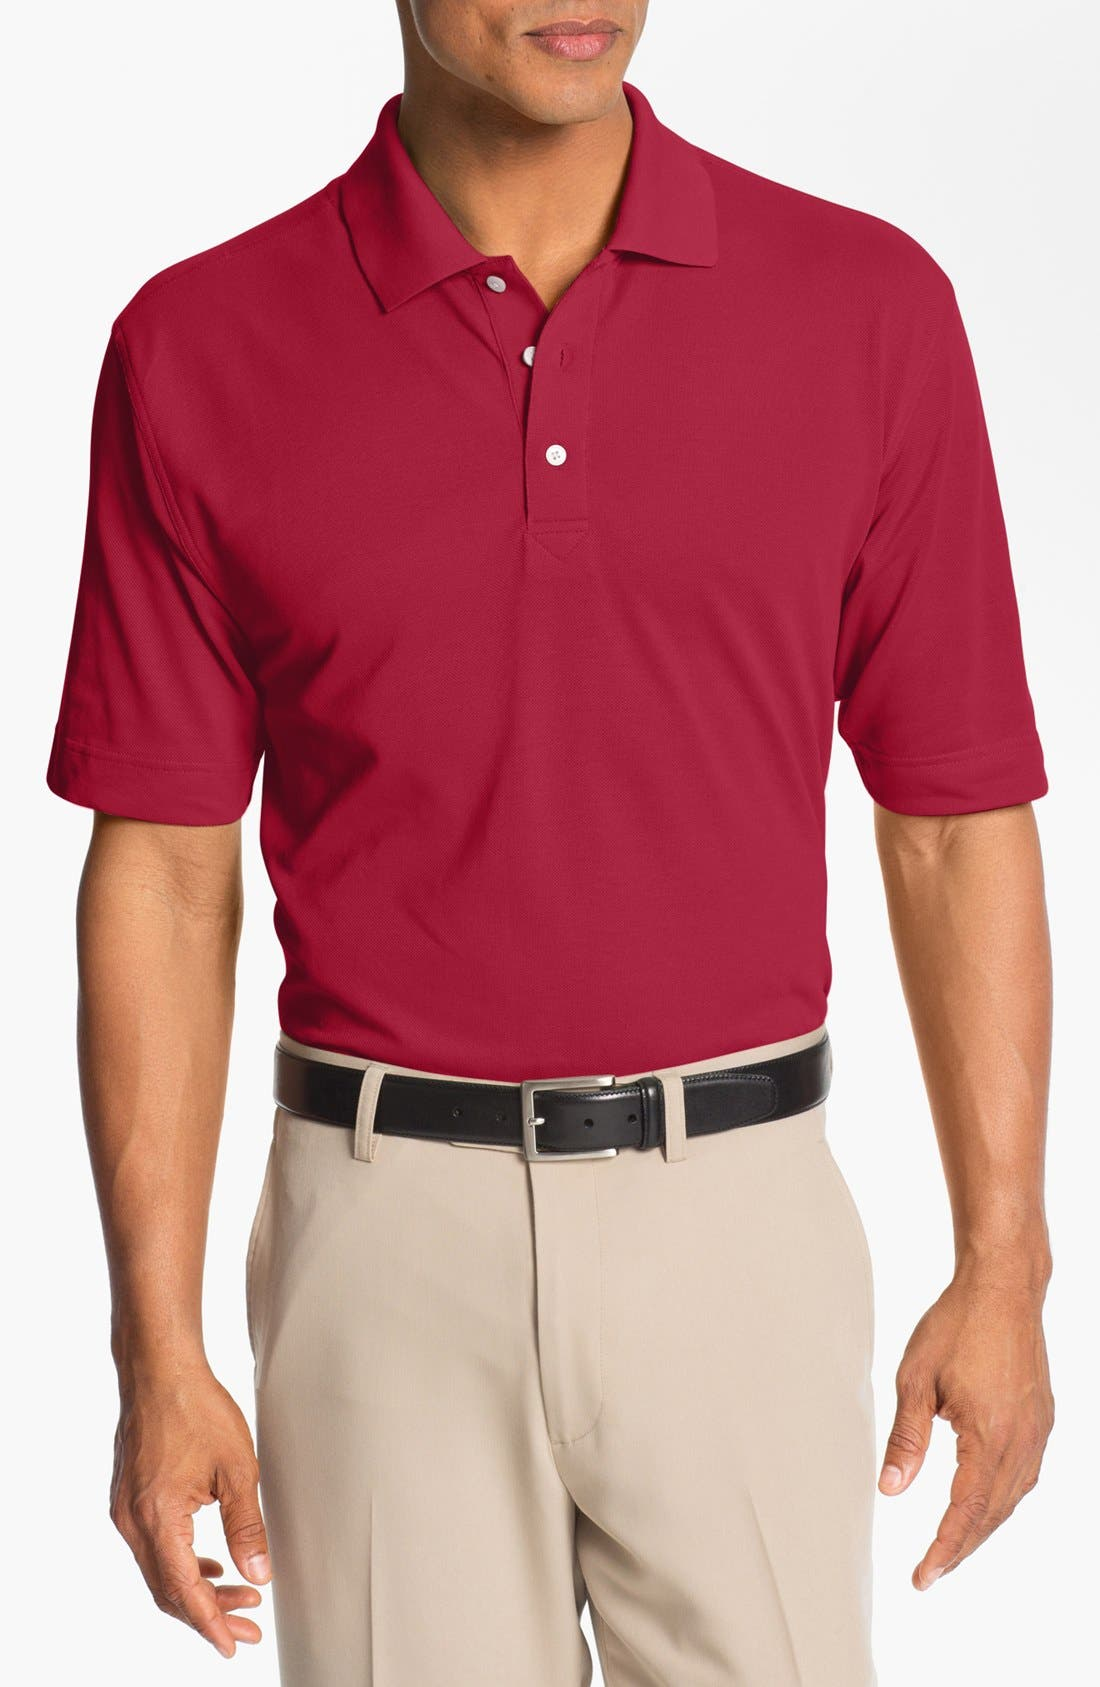 Alternate Image 1 Selected - Cutter & Buck 'Championship' DryTec Golf Polo (Big & Tall)